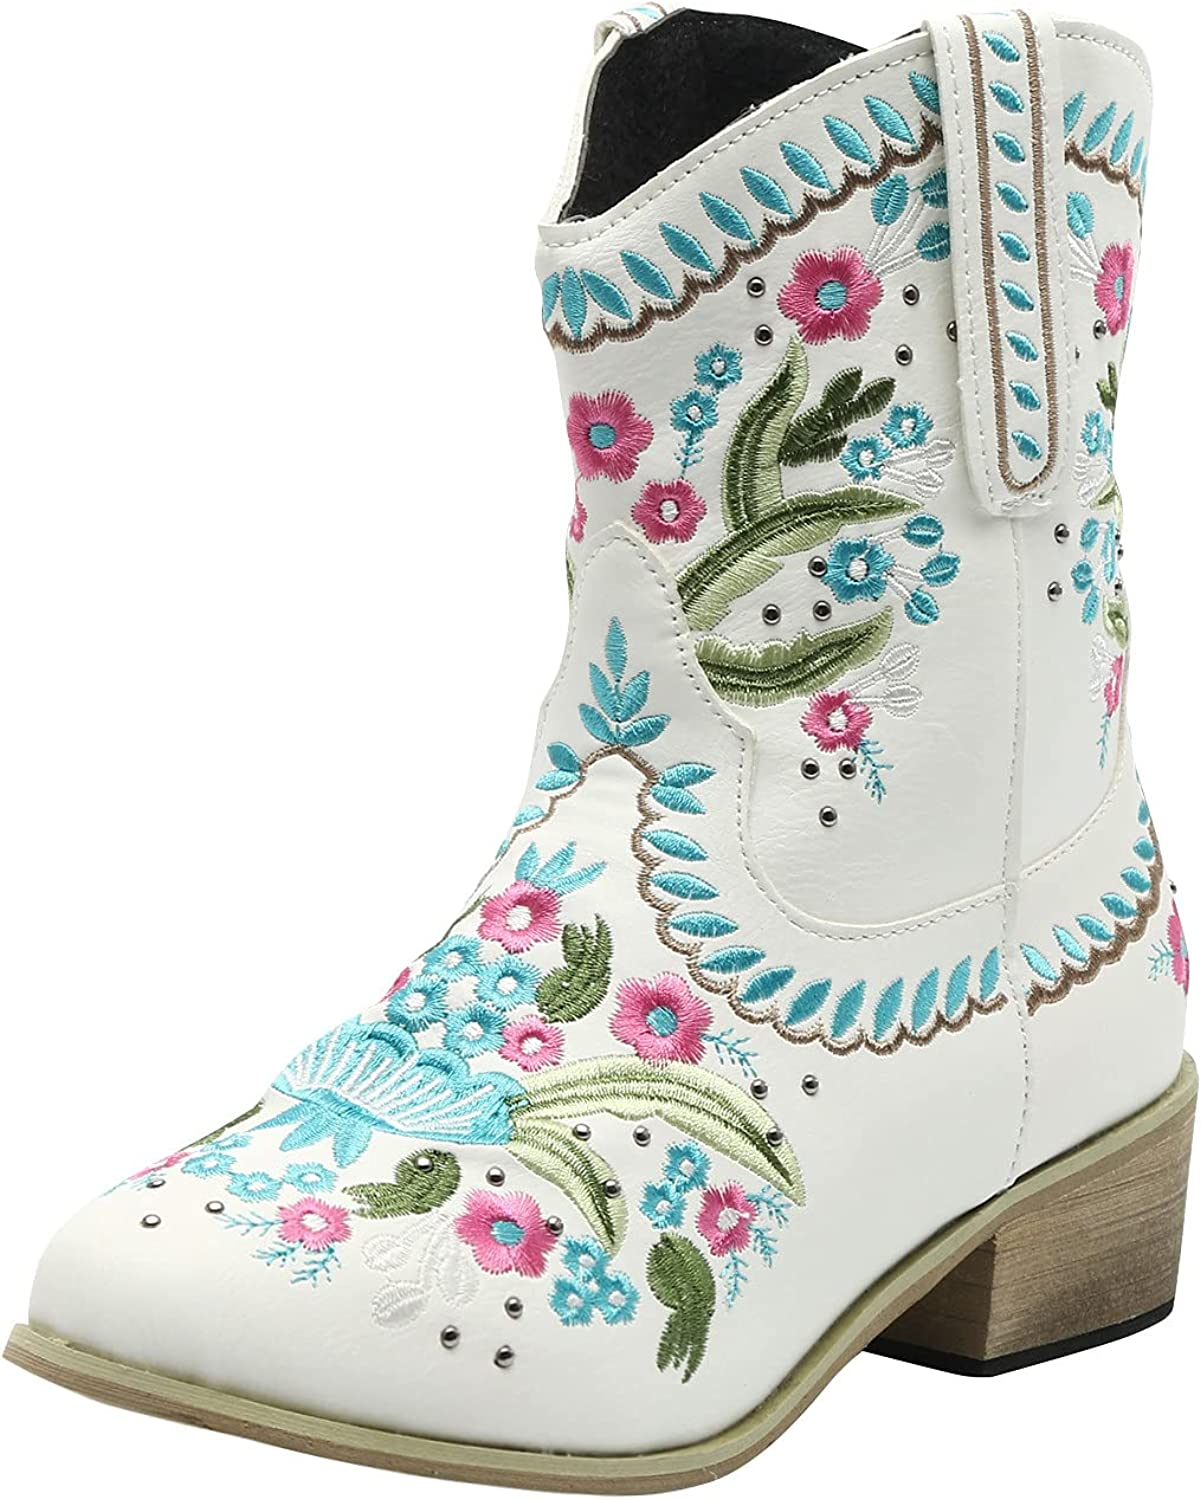 ZiSUGP Cowboy Boots For Women Pointed Toe Modern Western Cowgirl Embroidered Stitched Ankle Boots